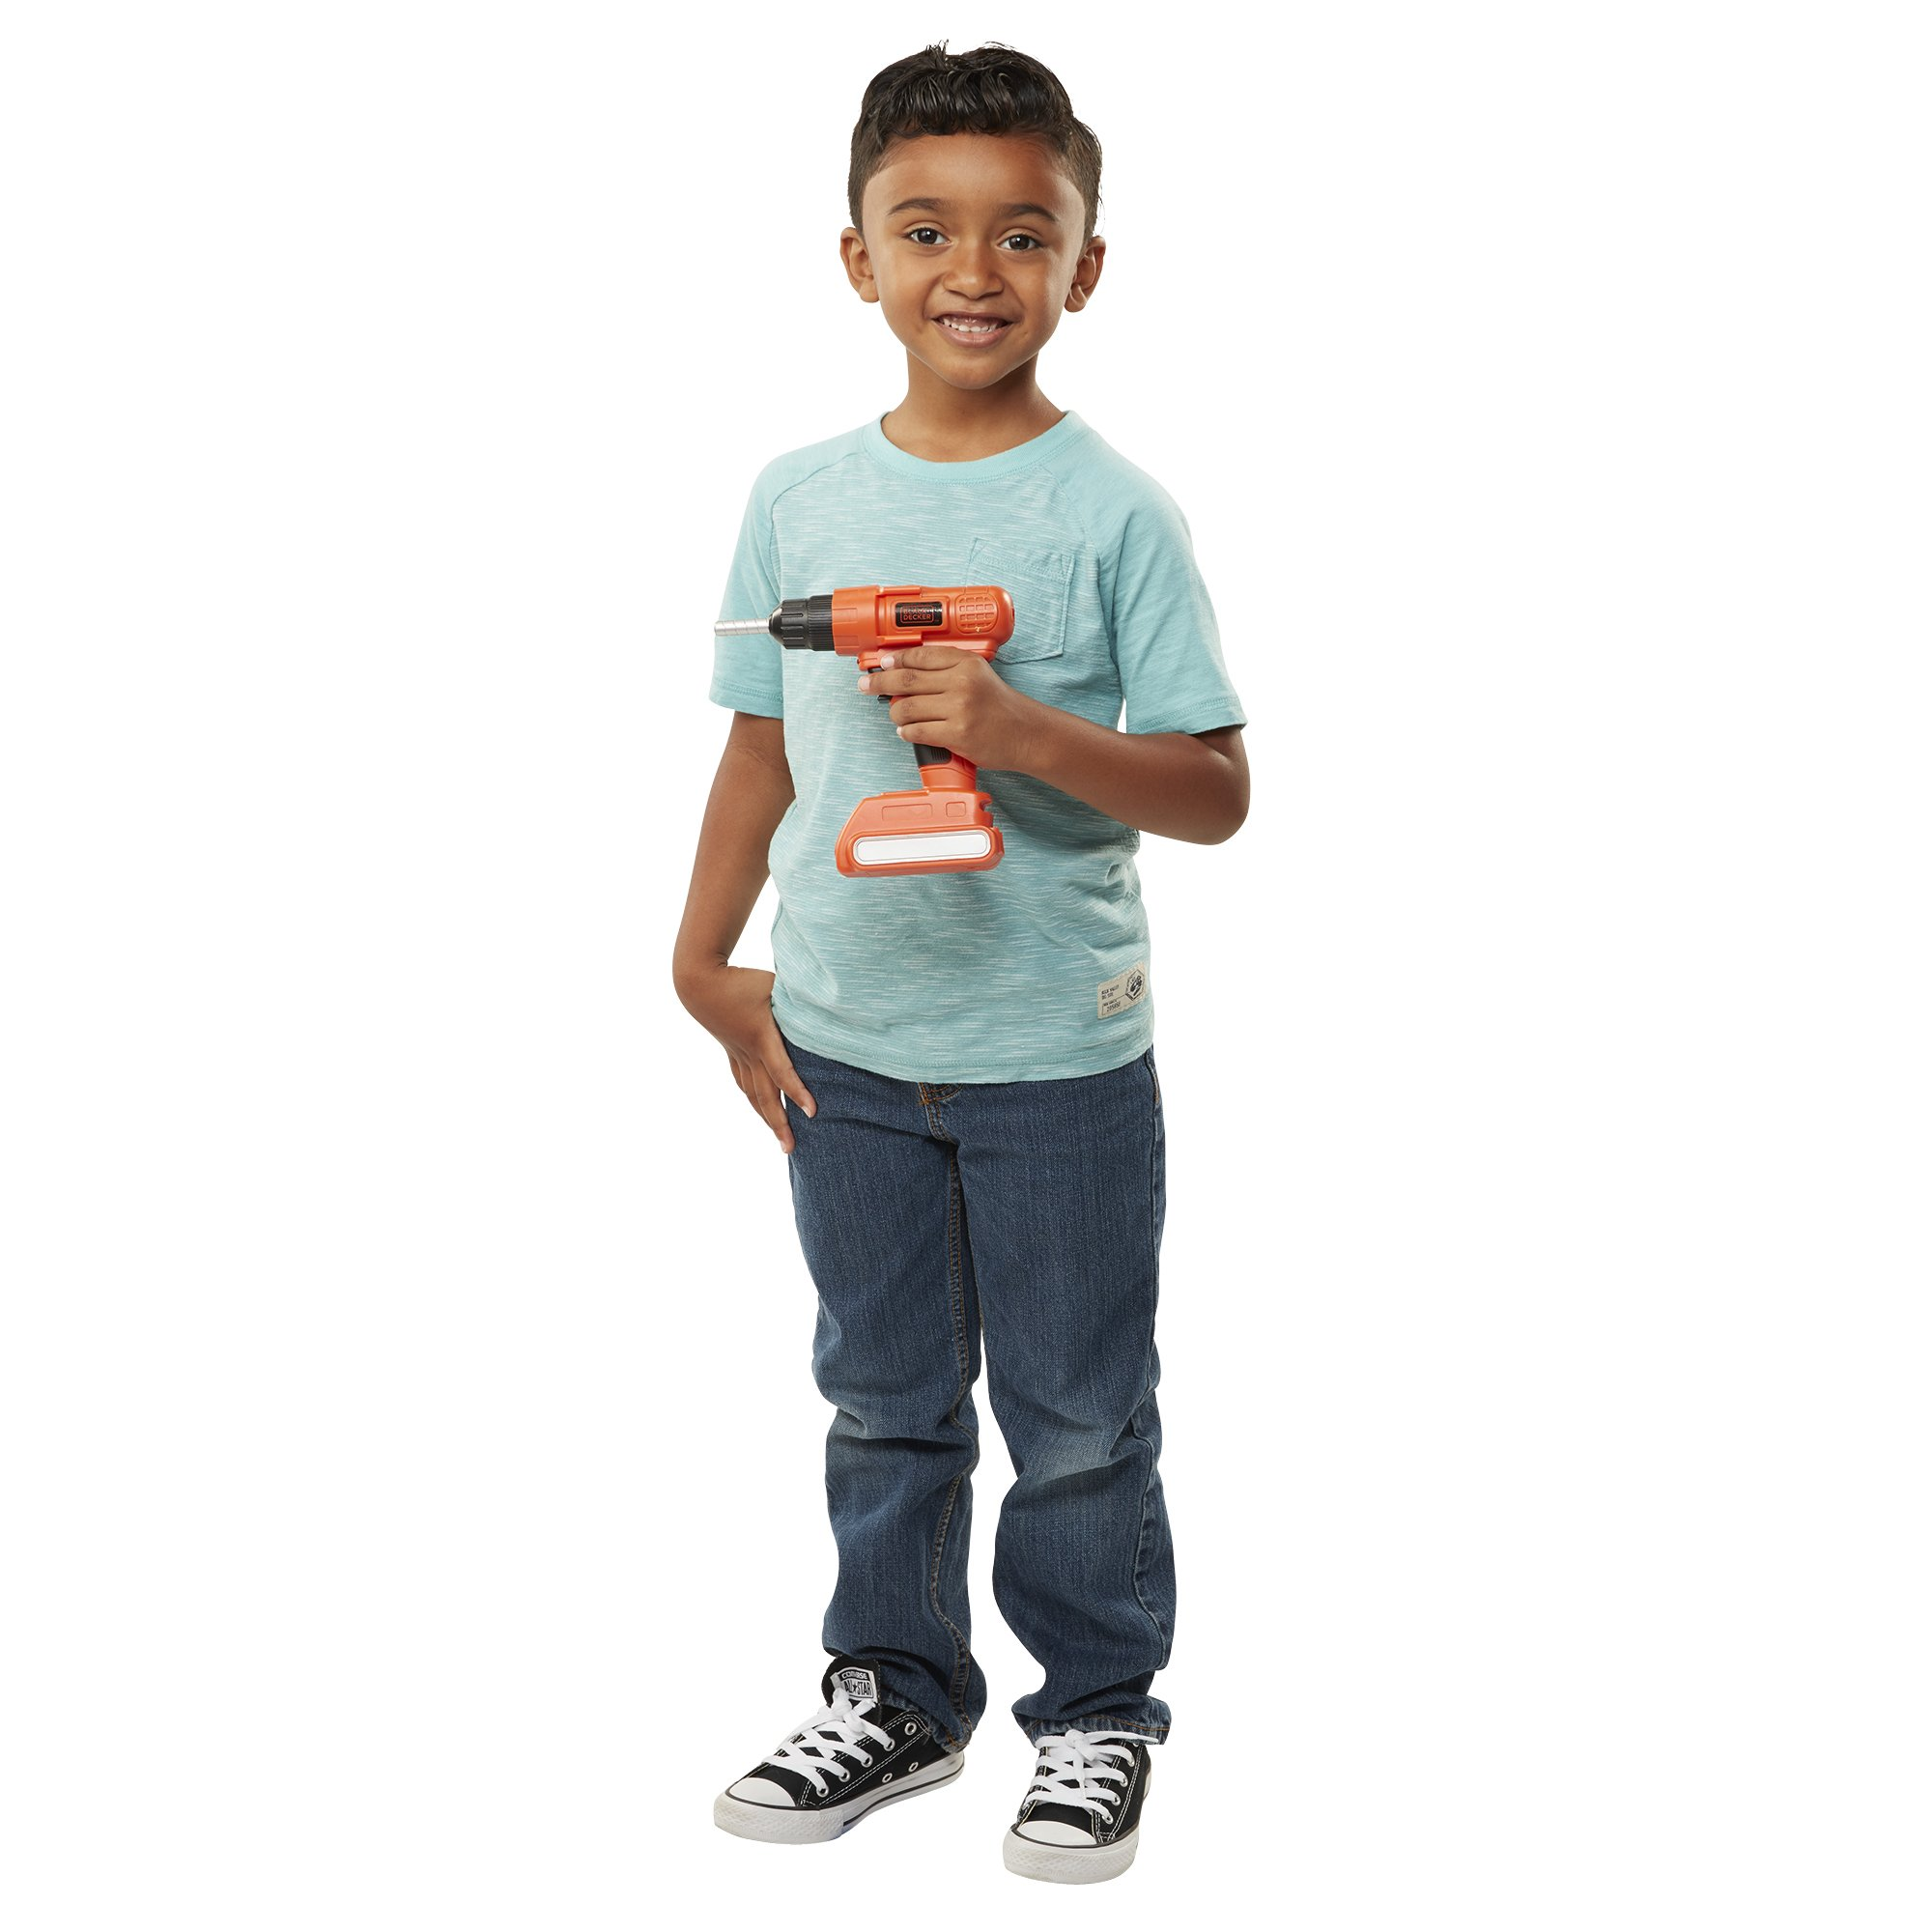 BLACK+DECKER Jr. Electronic Power Drill, Boys, Kids Pretend Play Tool with Realistic Light, Sound & Action! by BLACK+DECKER